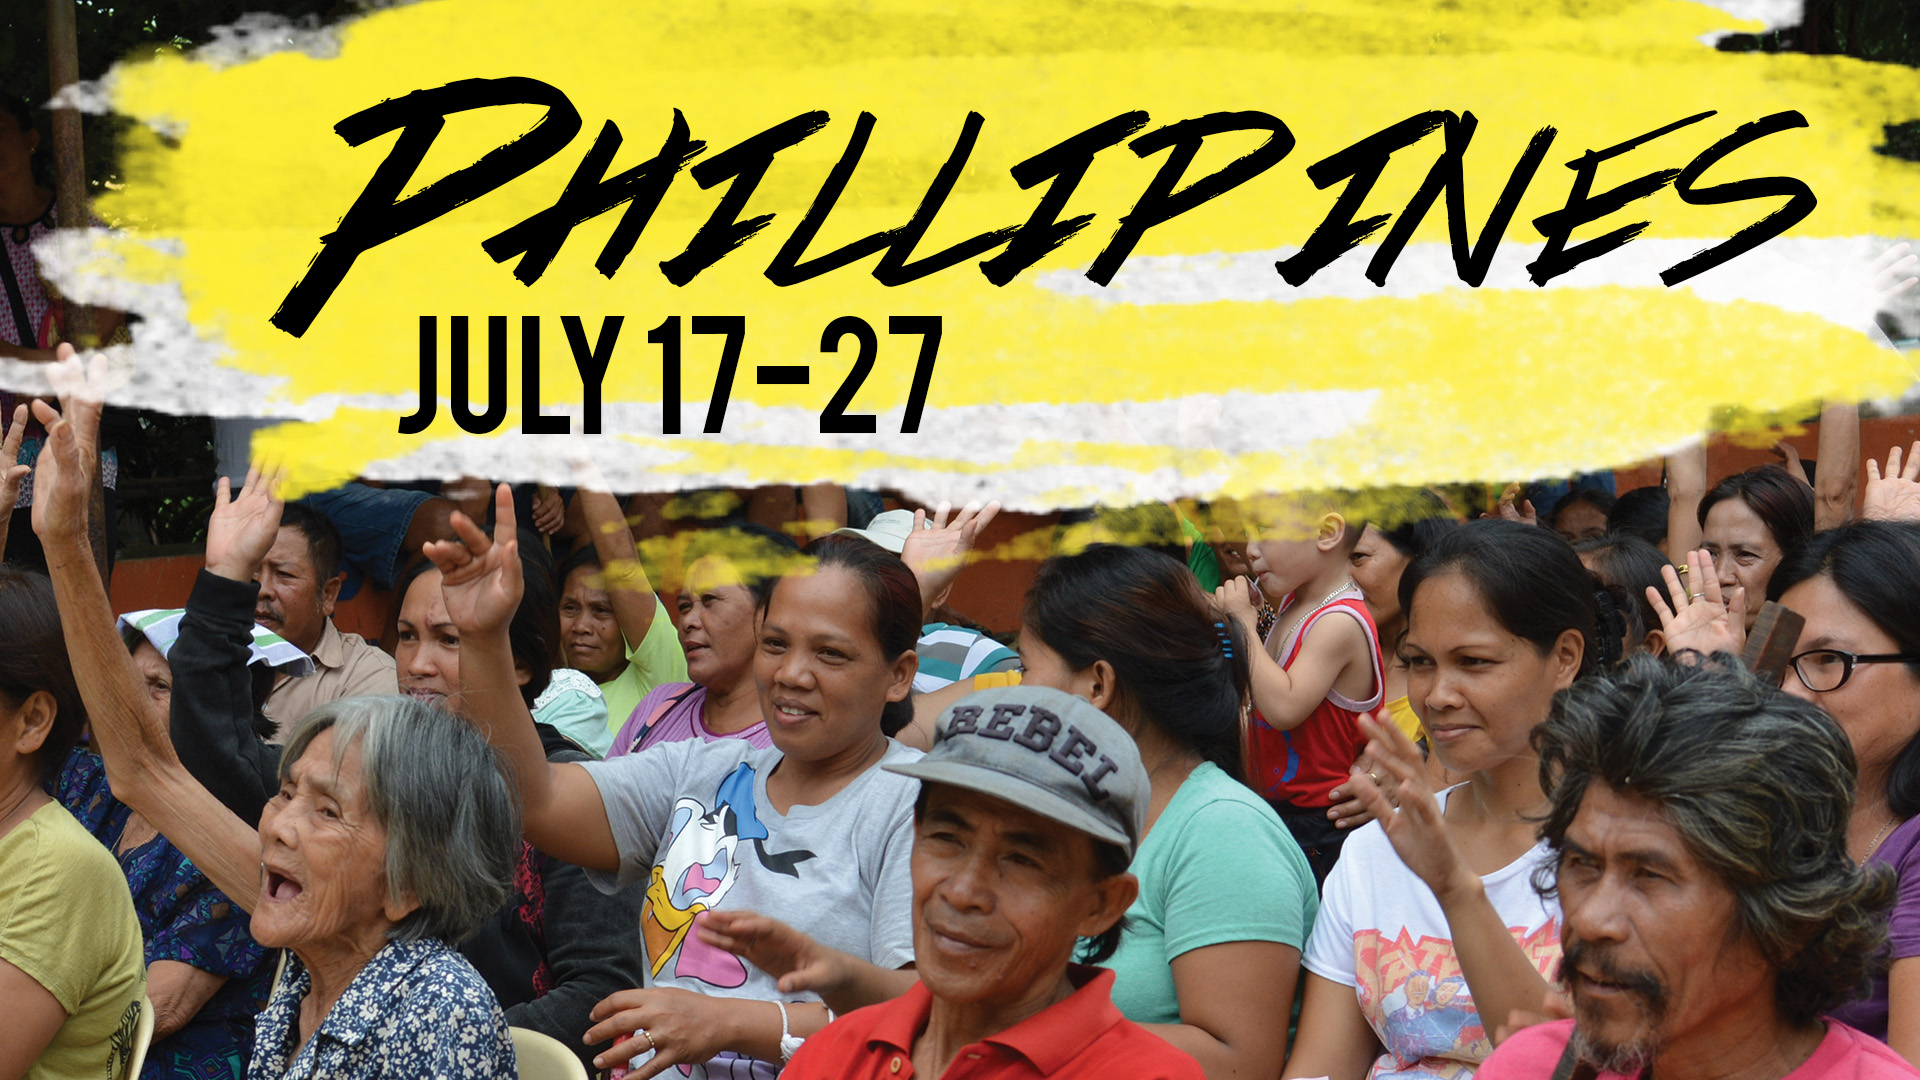 Phillipines Mission Trip